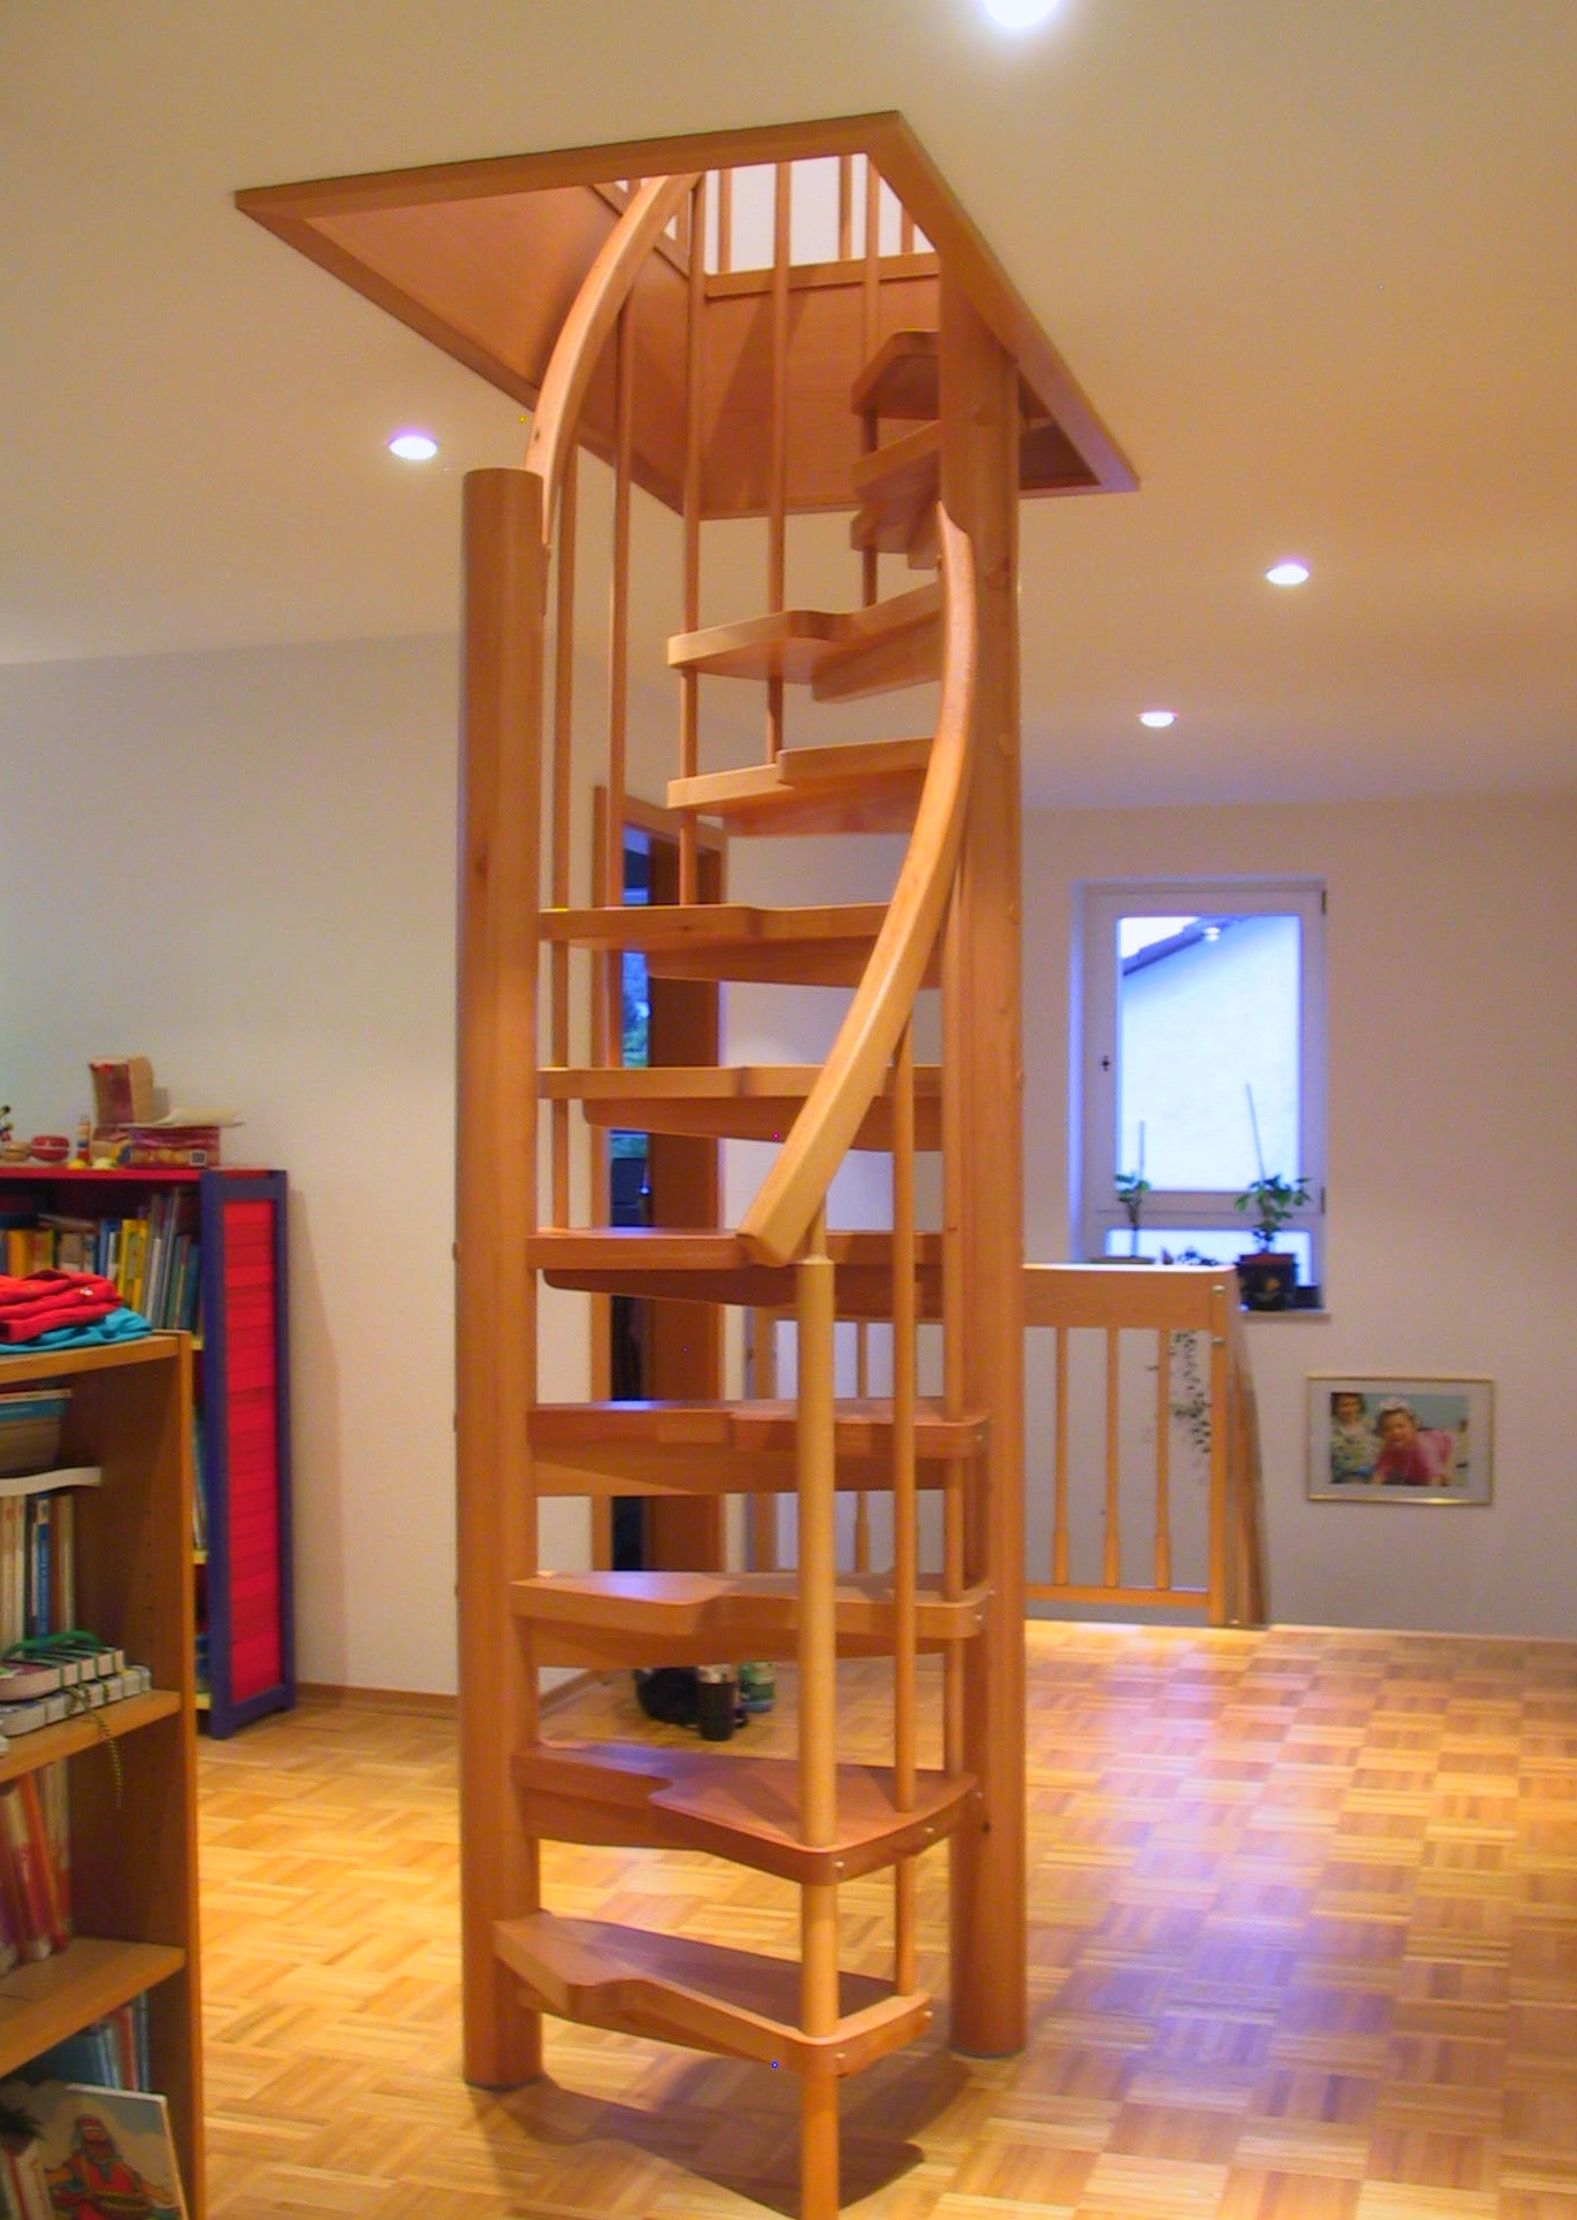 Stair Options For Small Spaces Space Saving Stairs Group Image Orchideen Mansarde